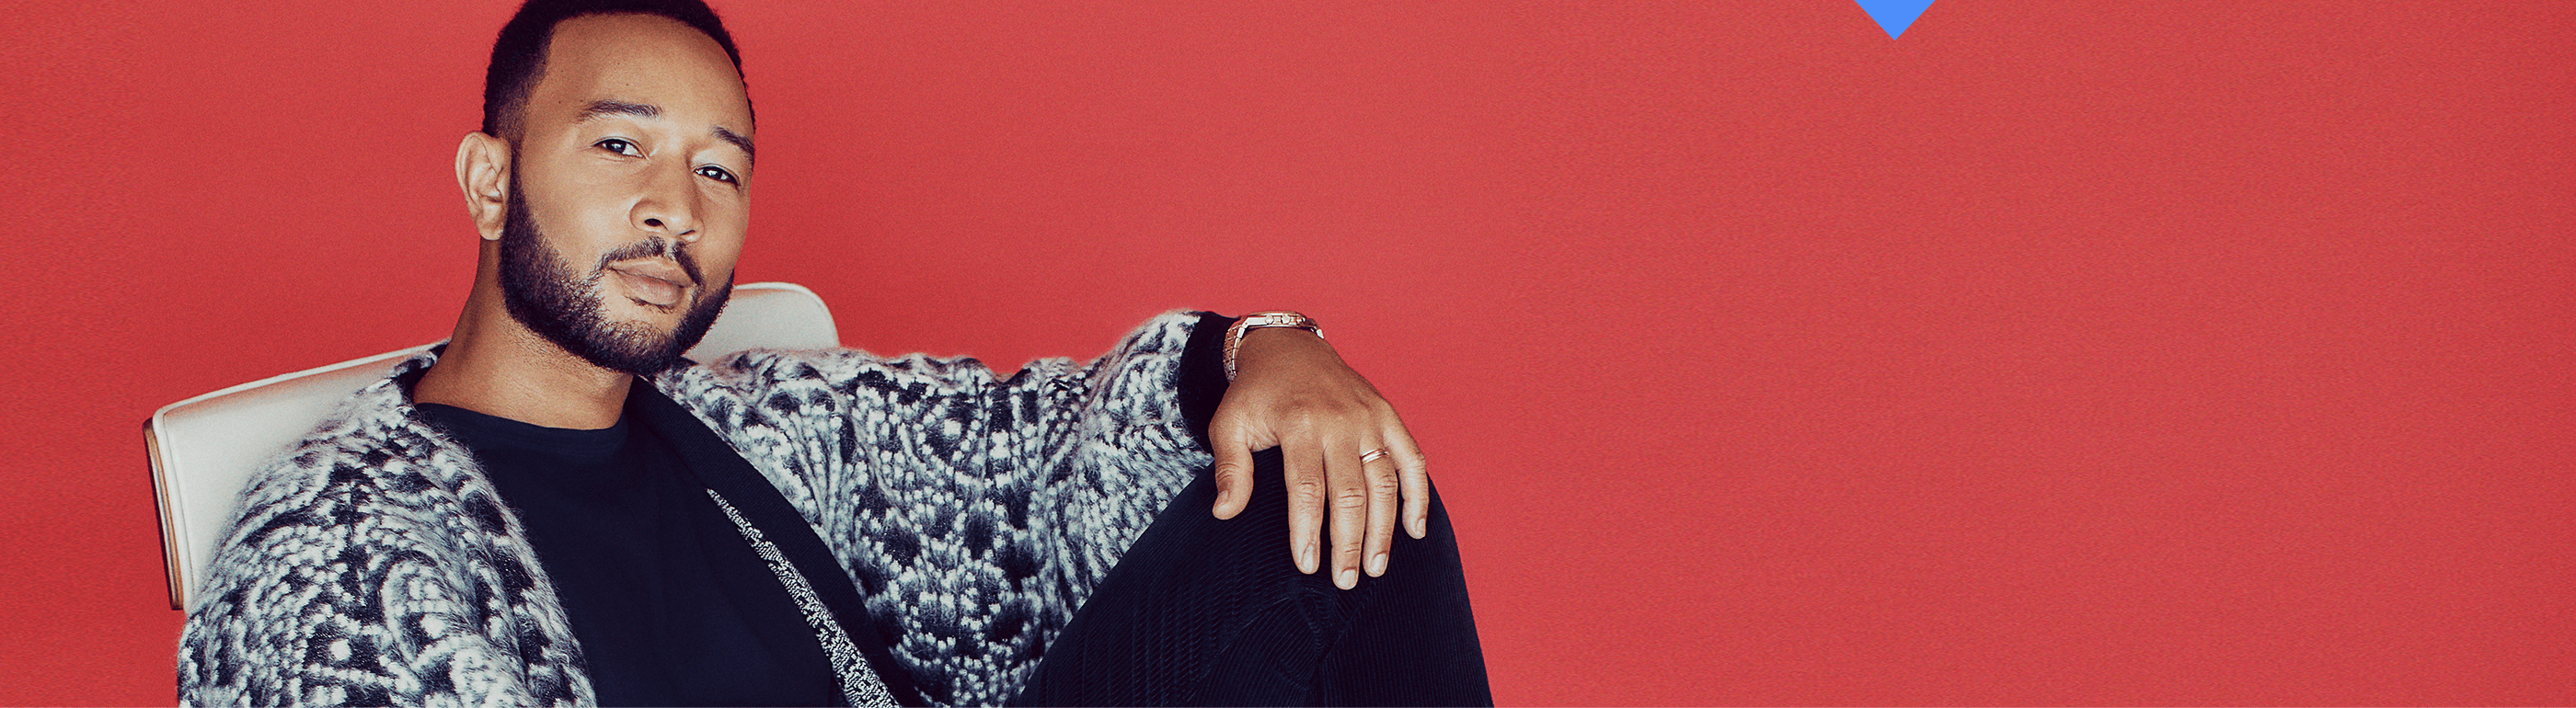 John Legend in a black and white sweater lounging on a red background